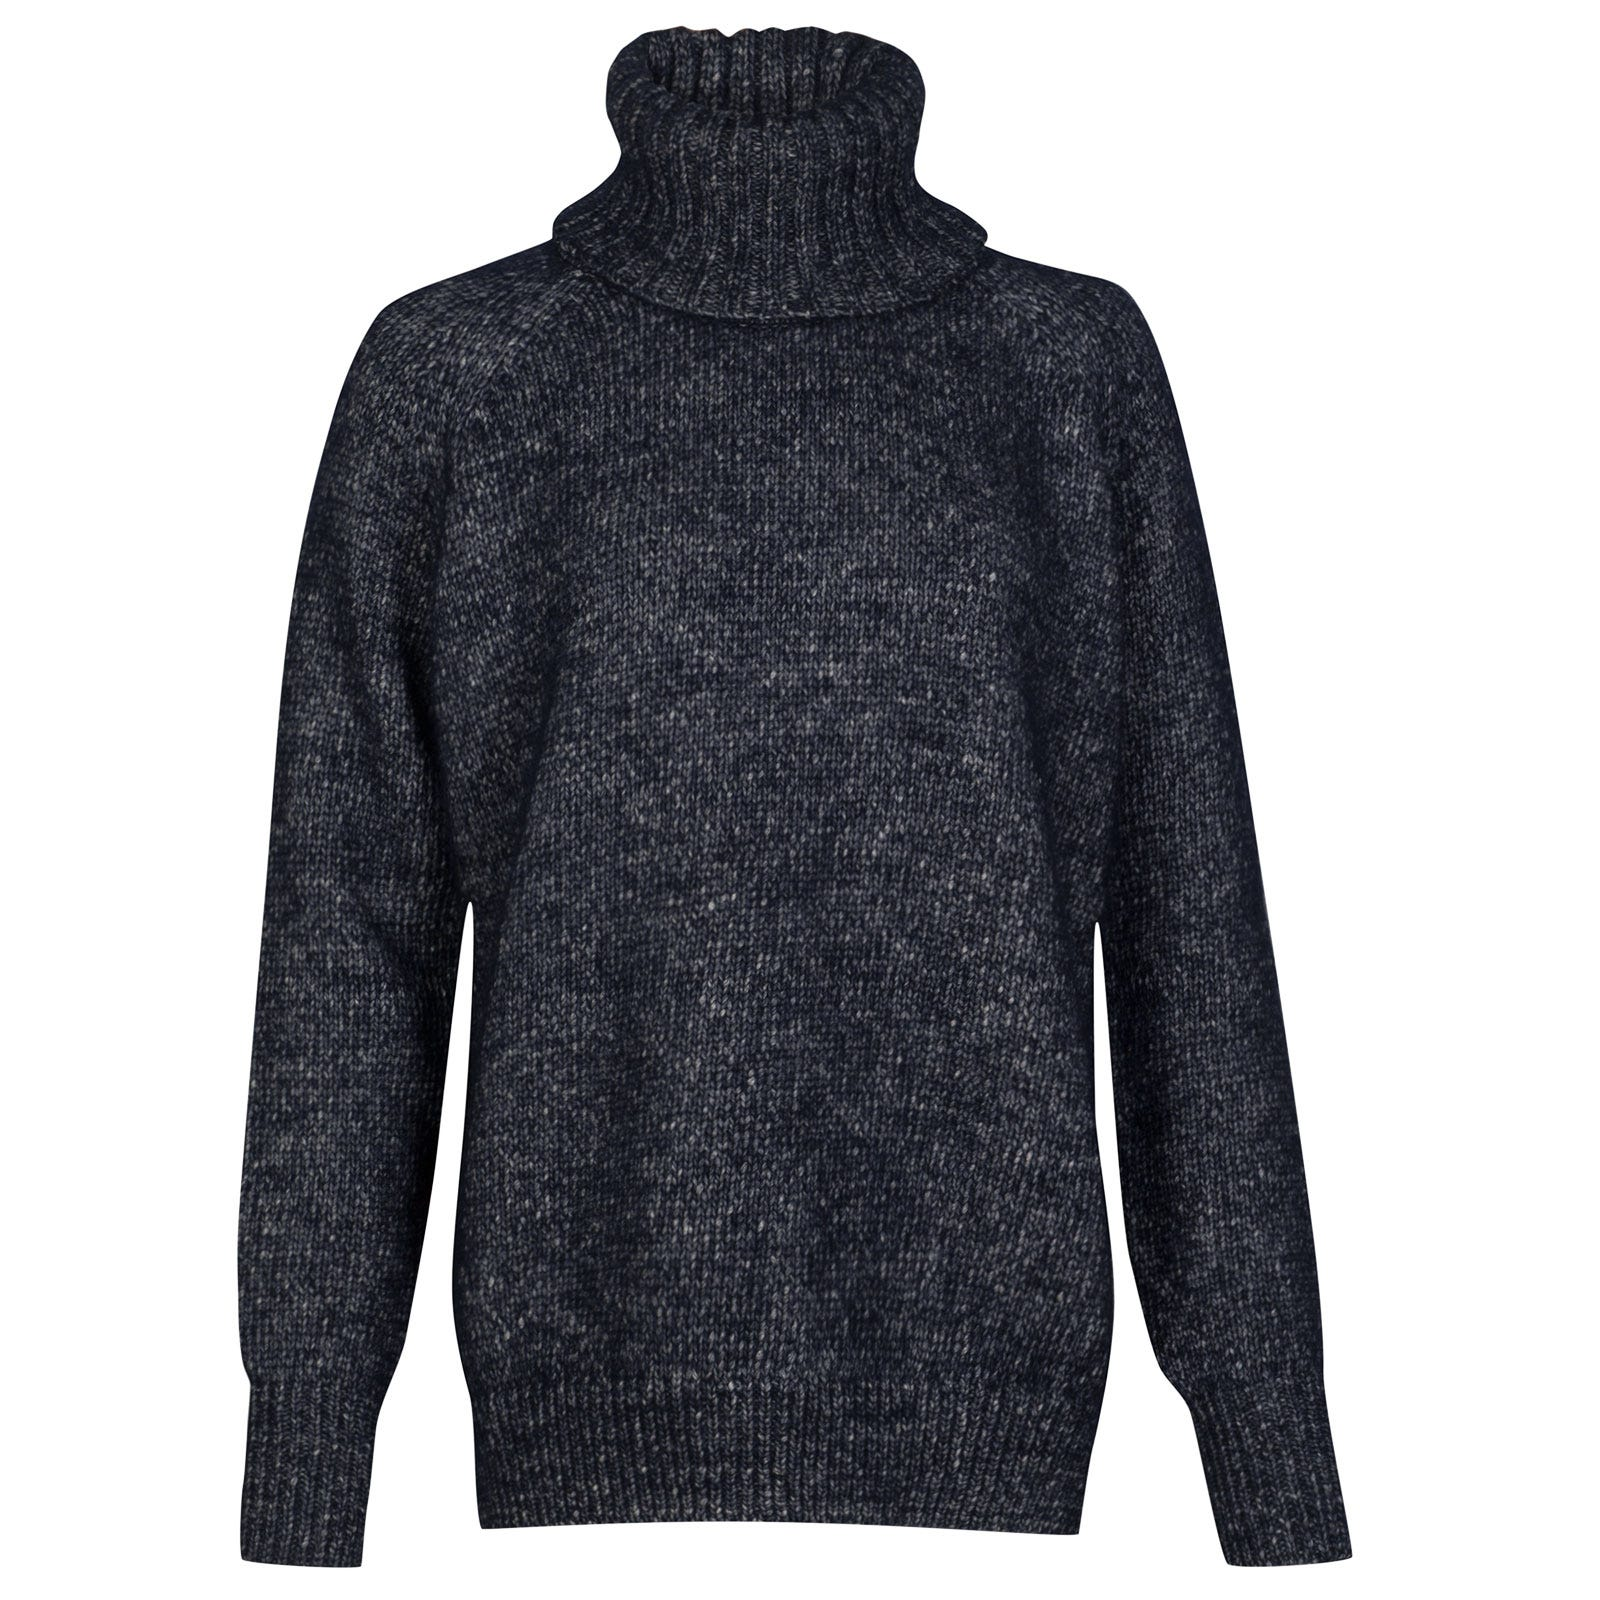 John Smedley morar Alpaca, Wool & Cotton Sweater in Midnight-M